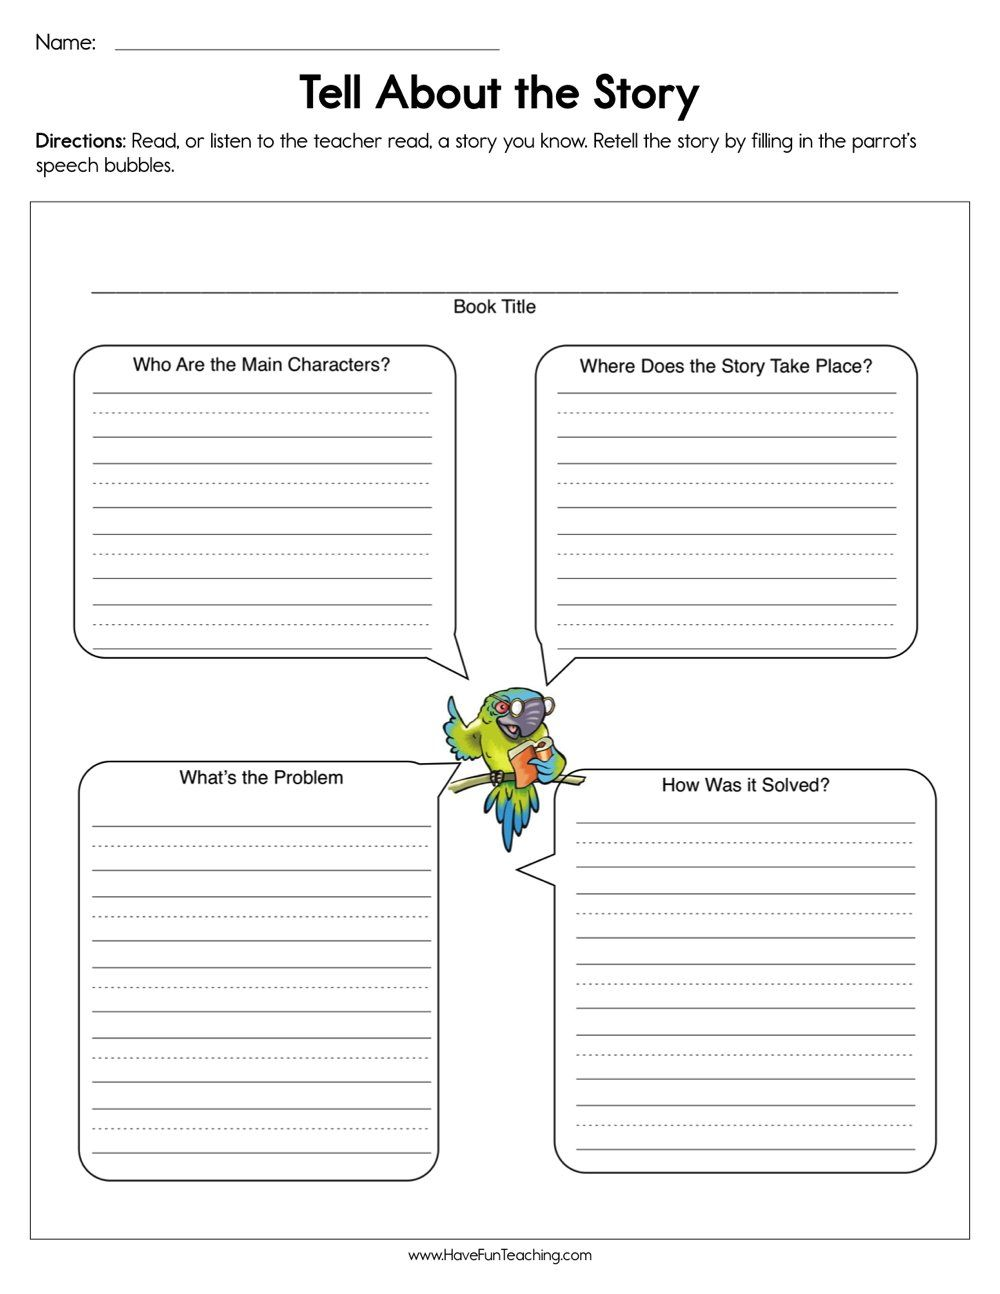 medium resolution of Tell About the Story Worksheet   Reading comprehension worksheets